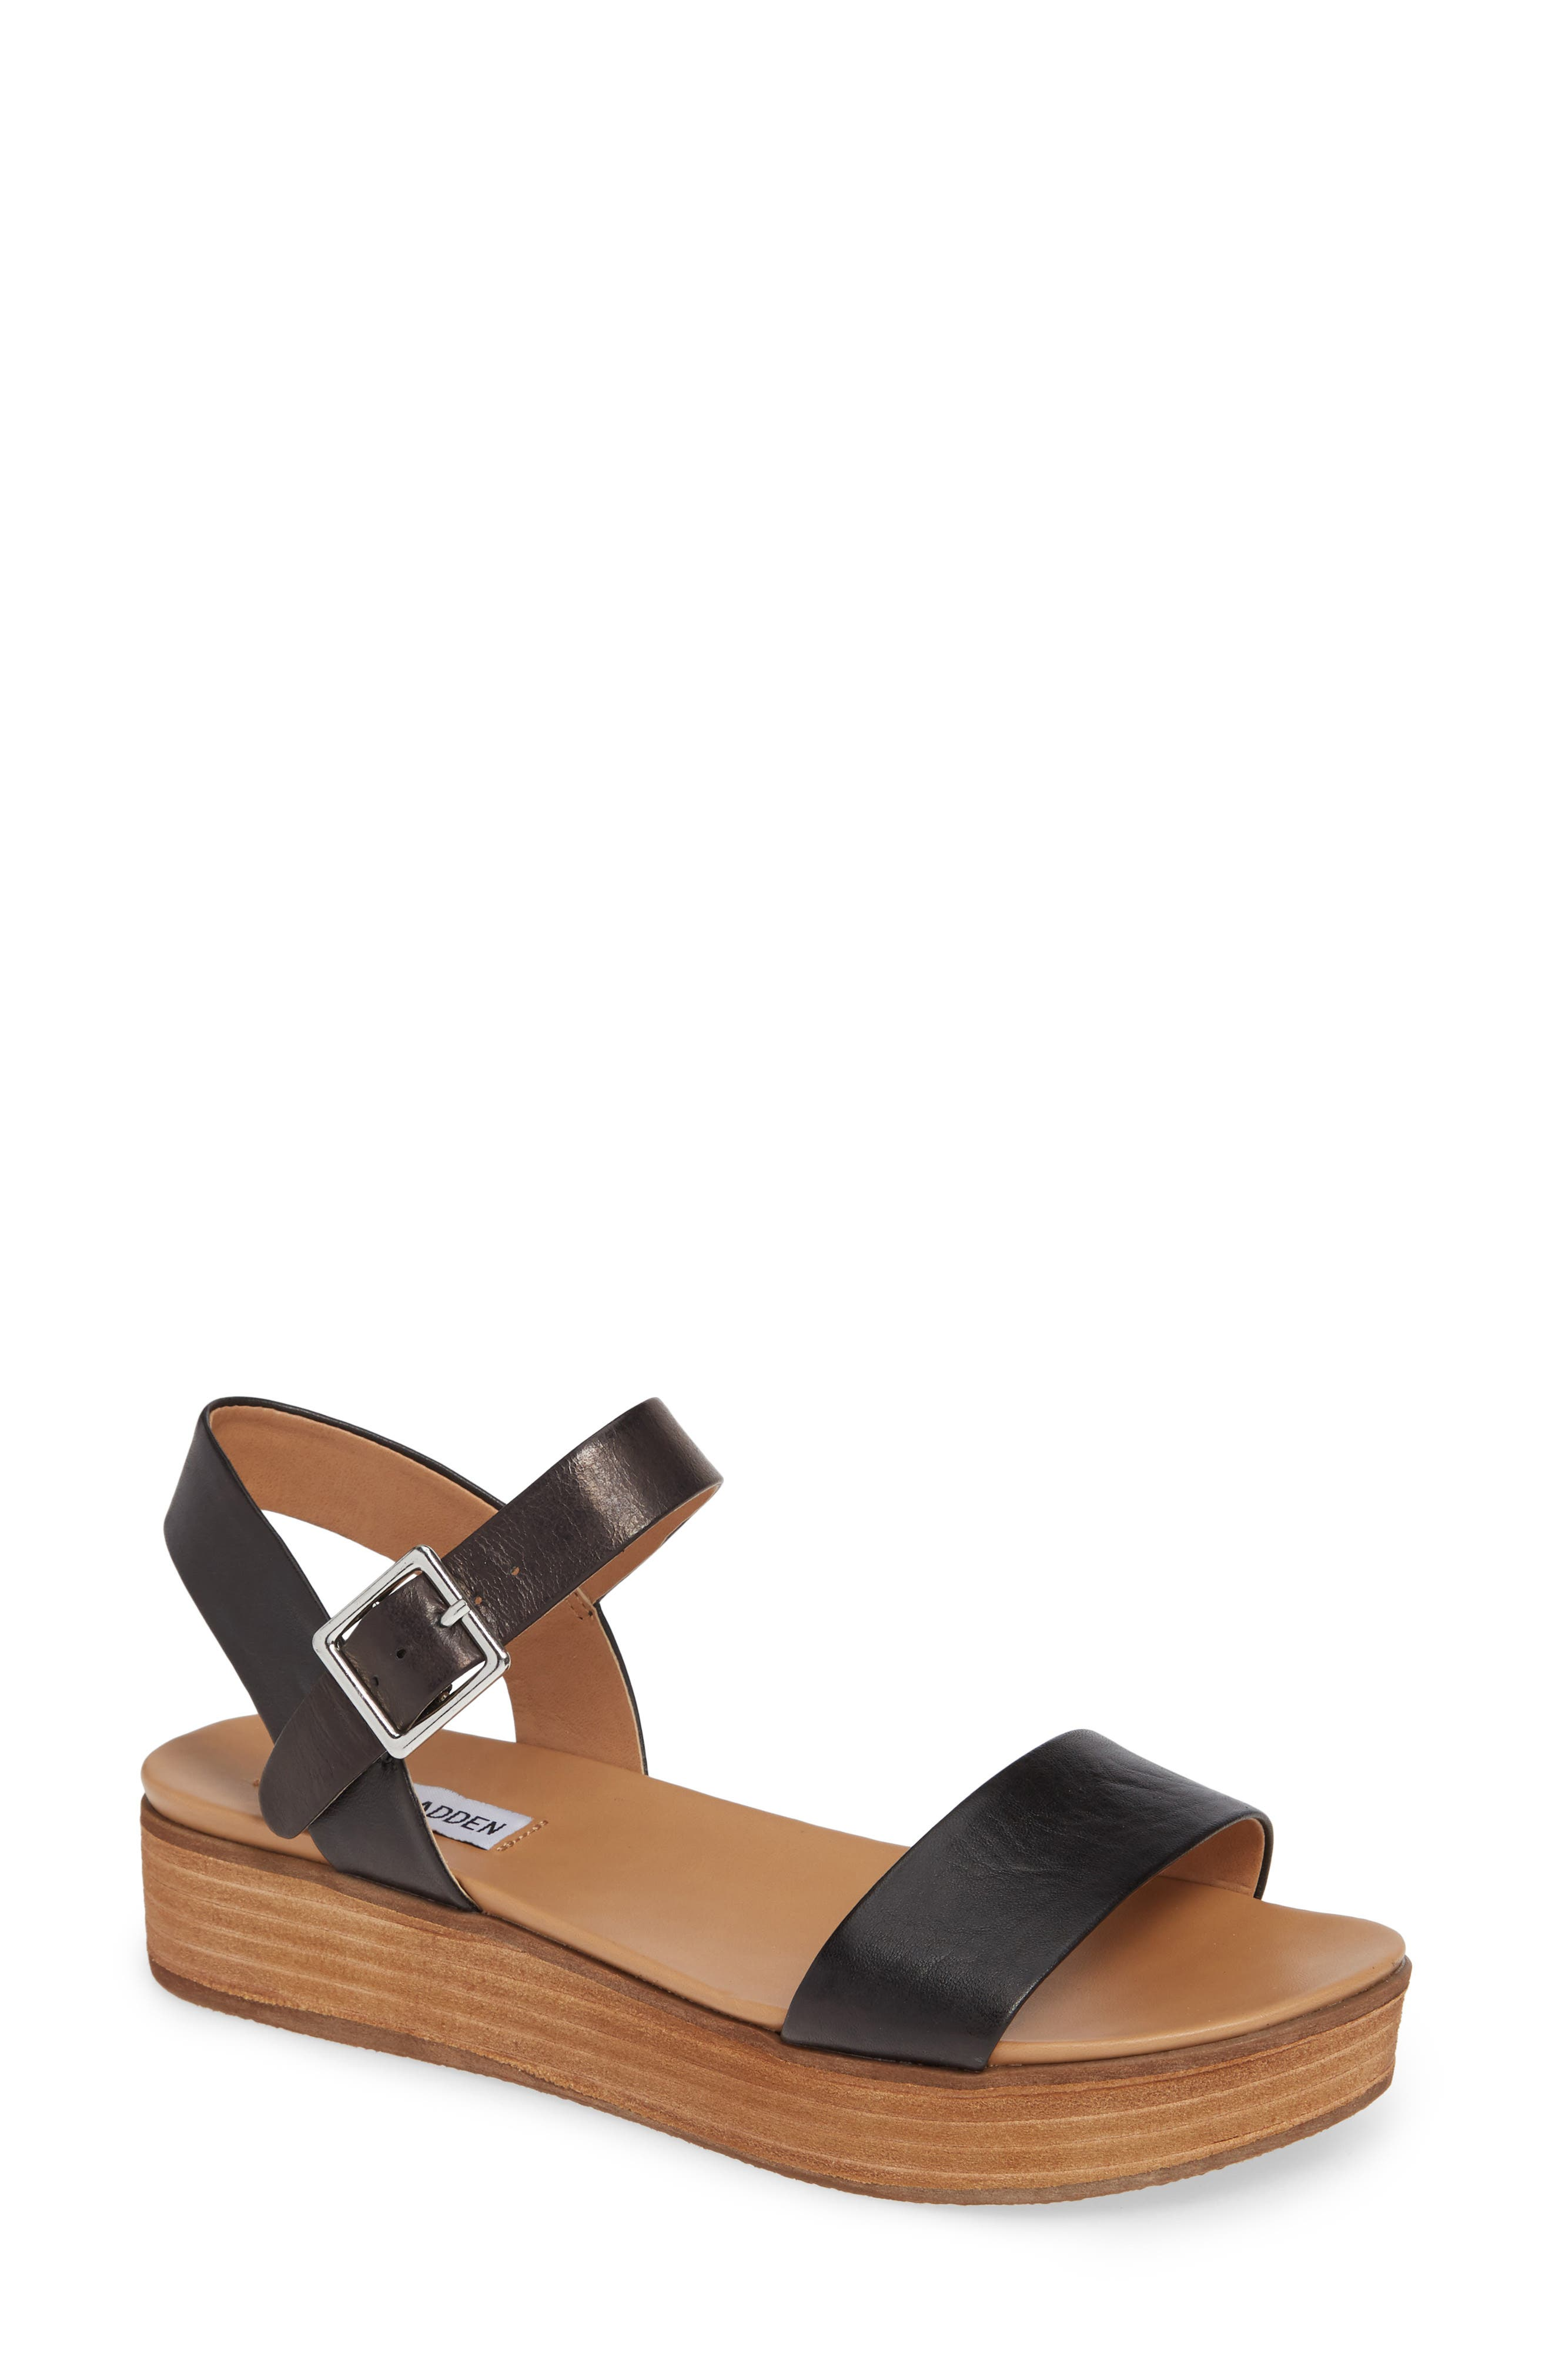 Aida Platform Sandal,                             Main thumbnail 1, color,                             BLACK LEATHER